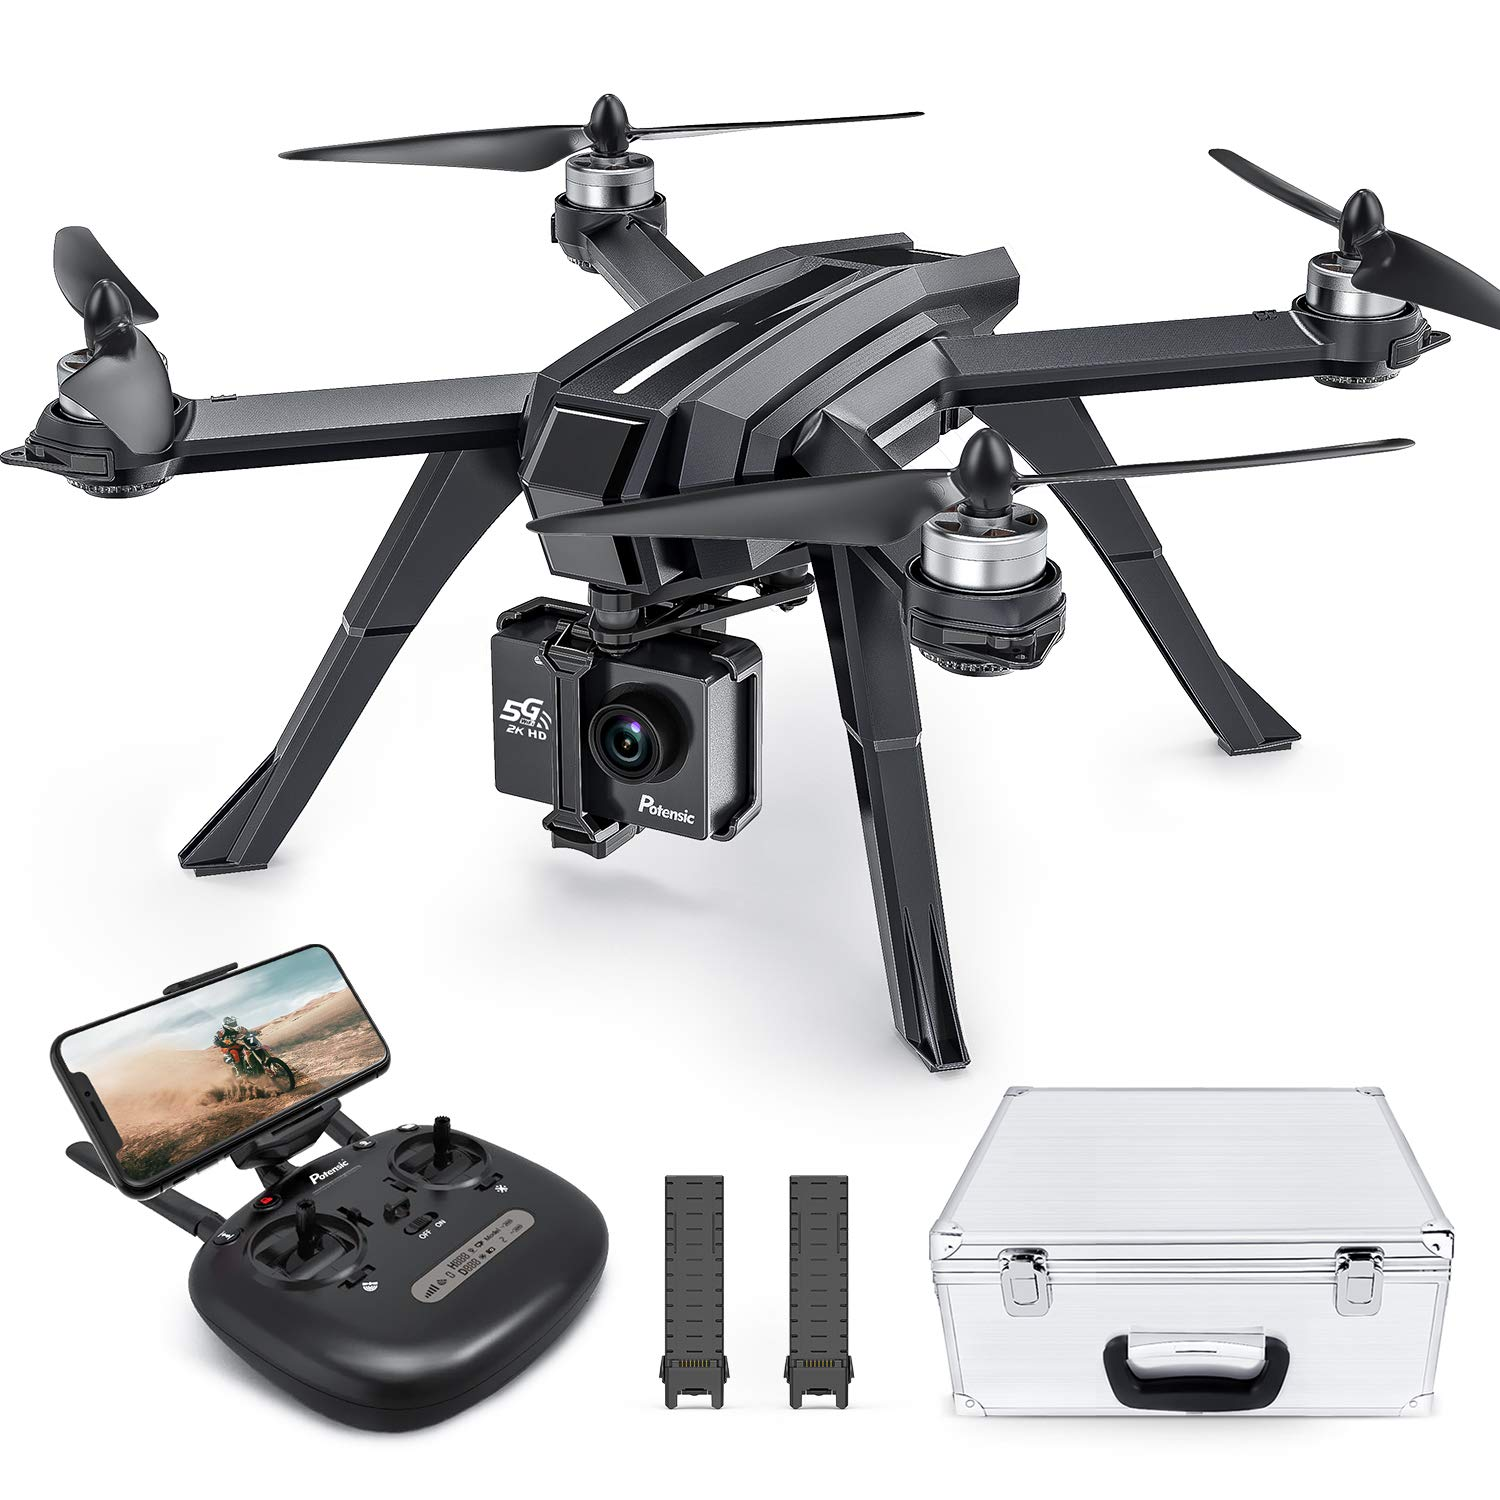 Potensic D85 GPS Drone with 2K FPV Camera, 5G WiFi Live Video Brushless Quadcopter with Carrying Case, 2 Batteries 40 Min, Auto Return Home, Follow Me, Selfie Drone for Adult Beginner Expert by Potensic